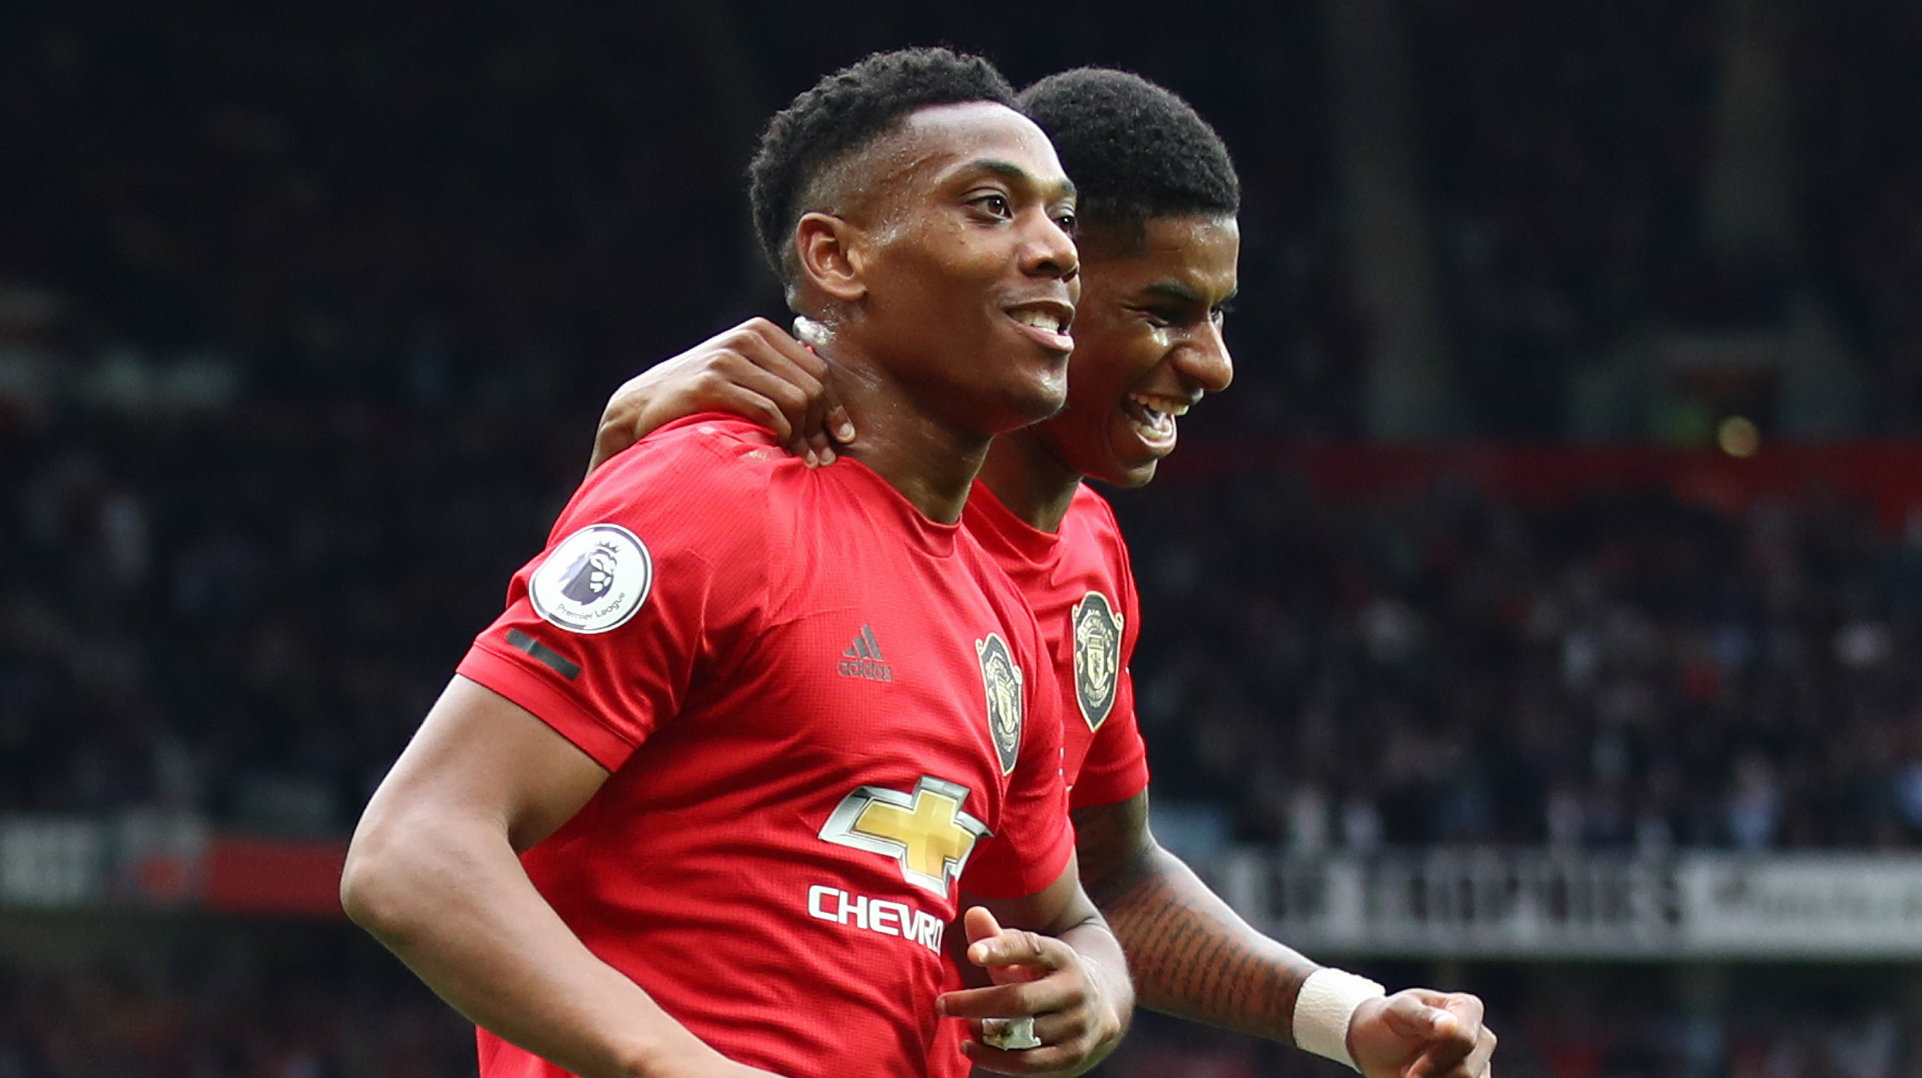 Anthony Martial Marcus Rashford Manchester United vs Chelsea 2019-20